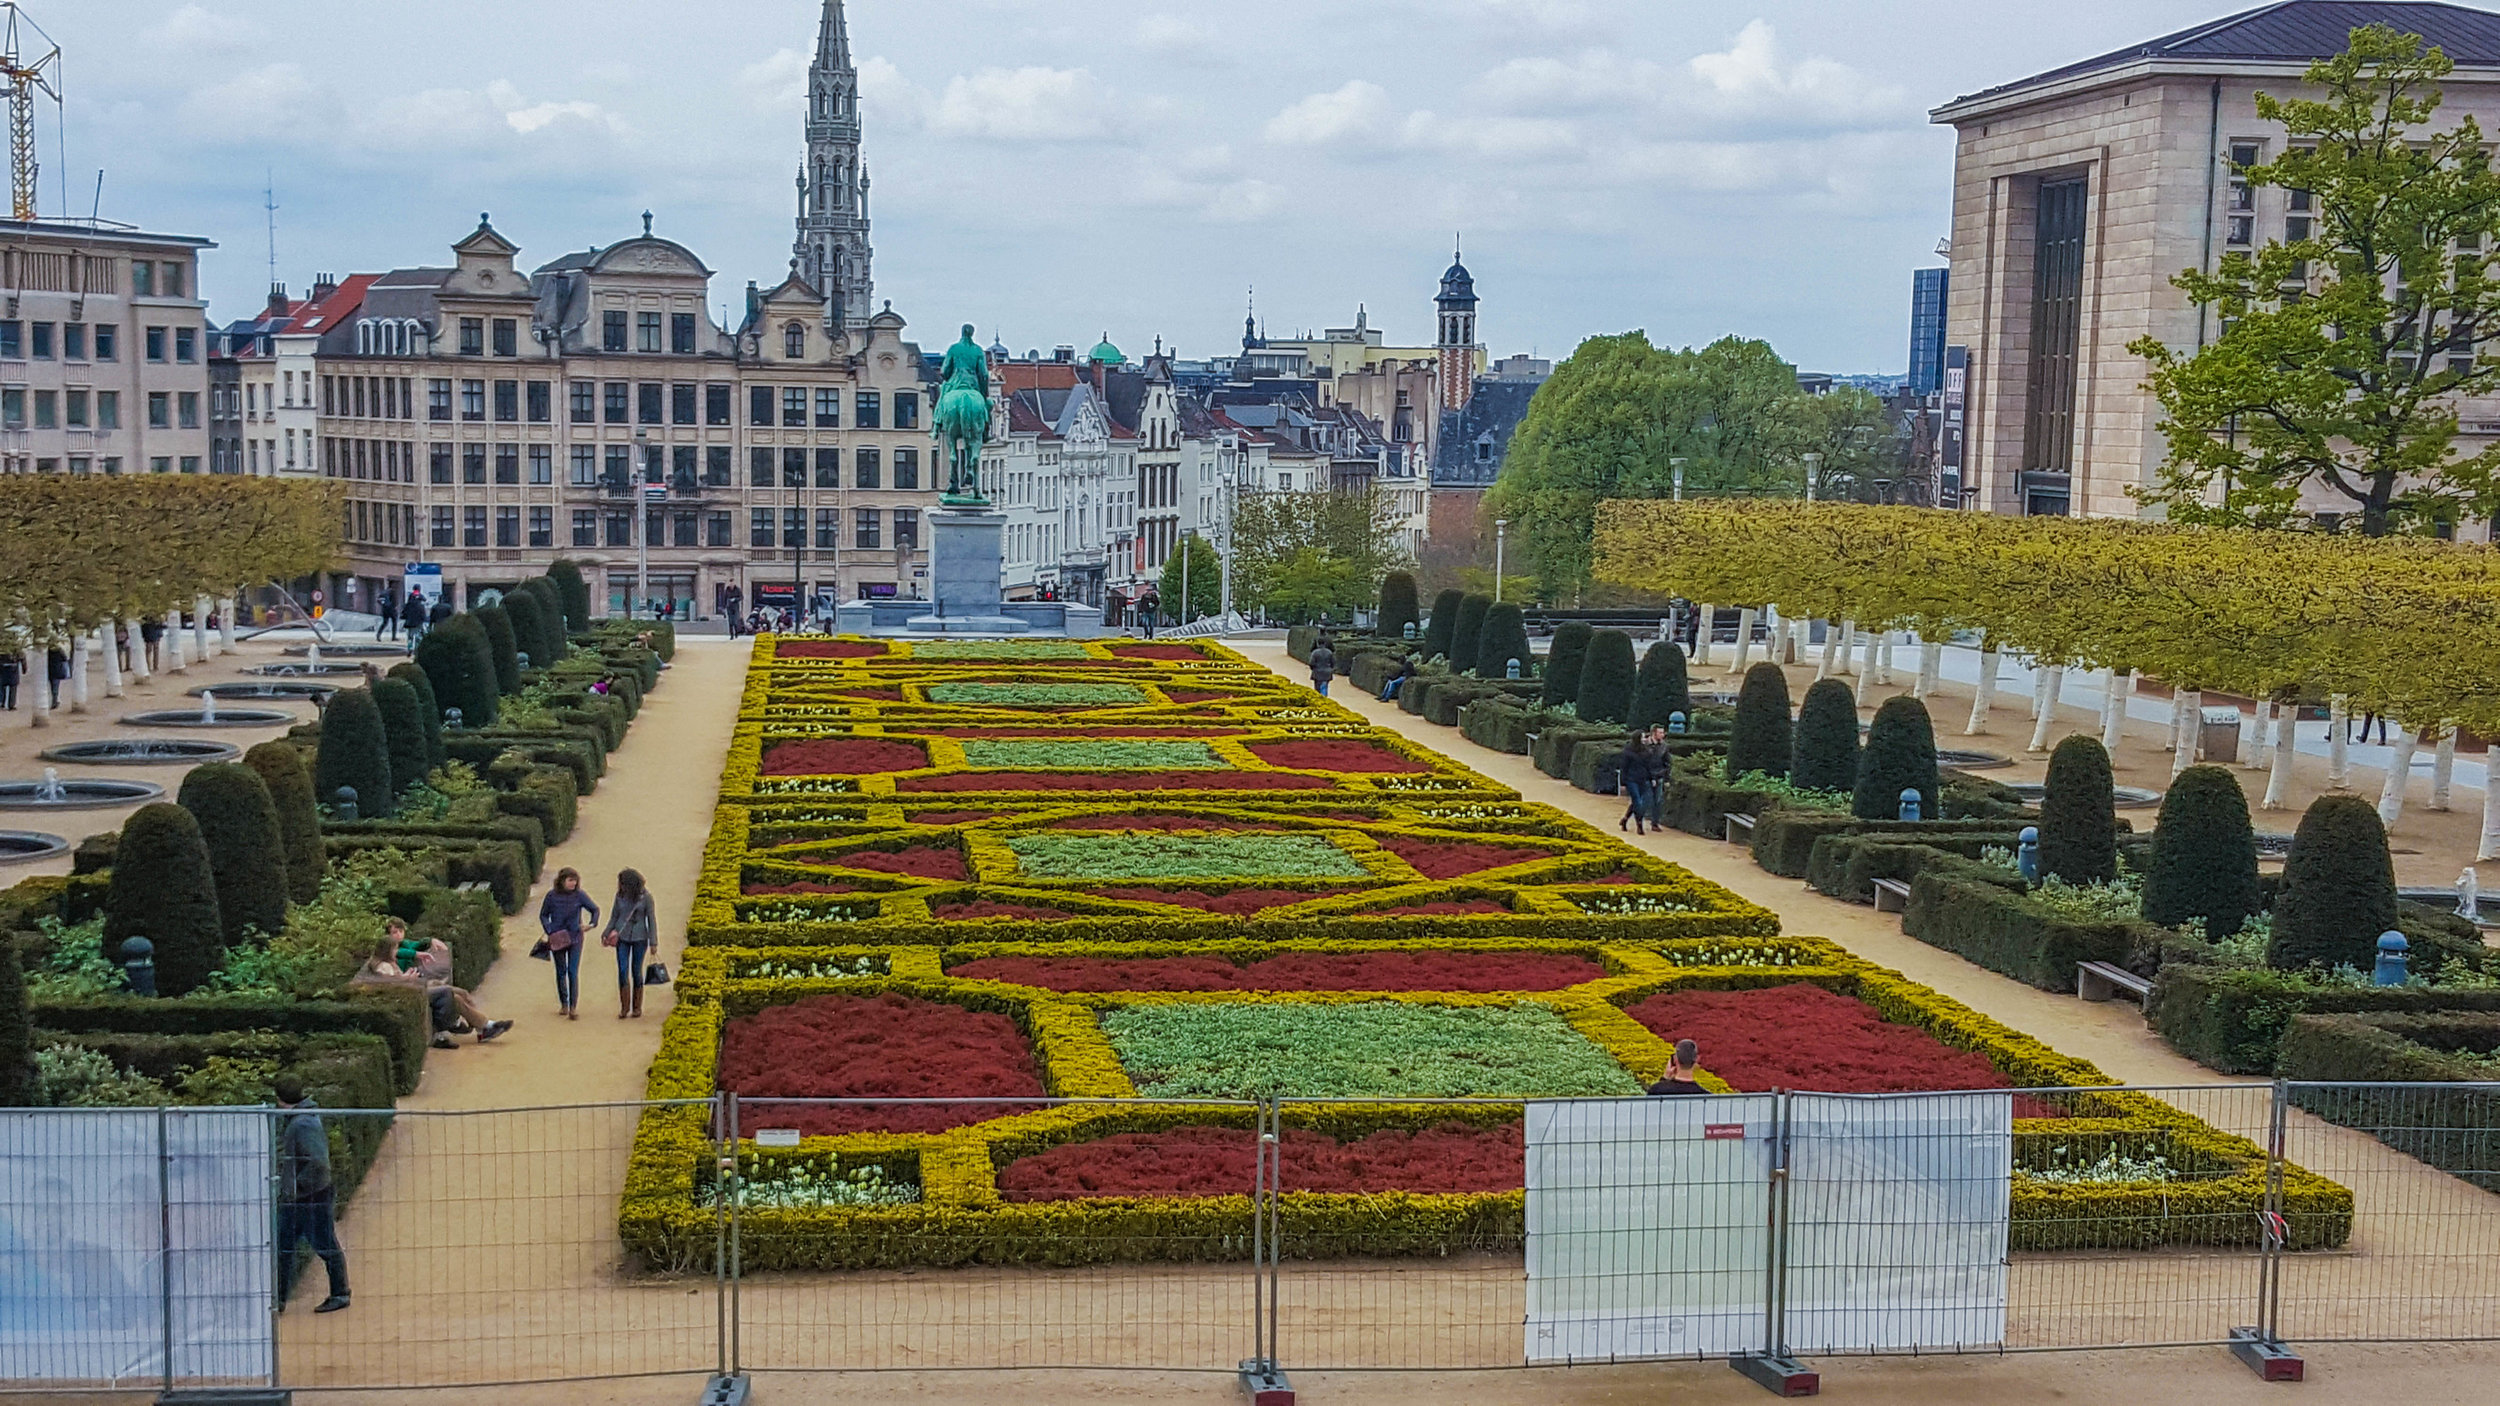 Mont des Arts - Kuntsberg with a nice view of the city center and the back of King Albert's I's statue